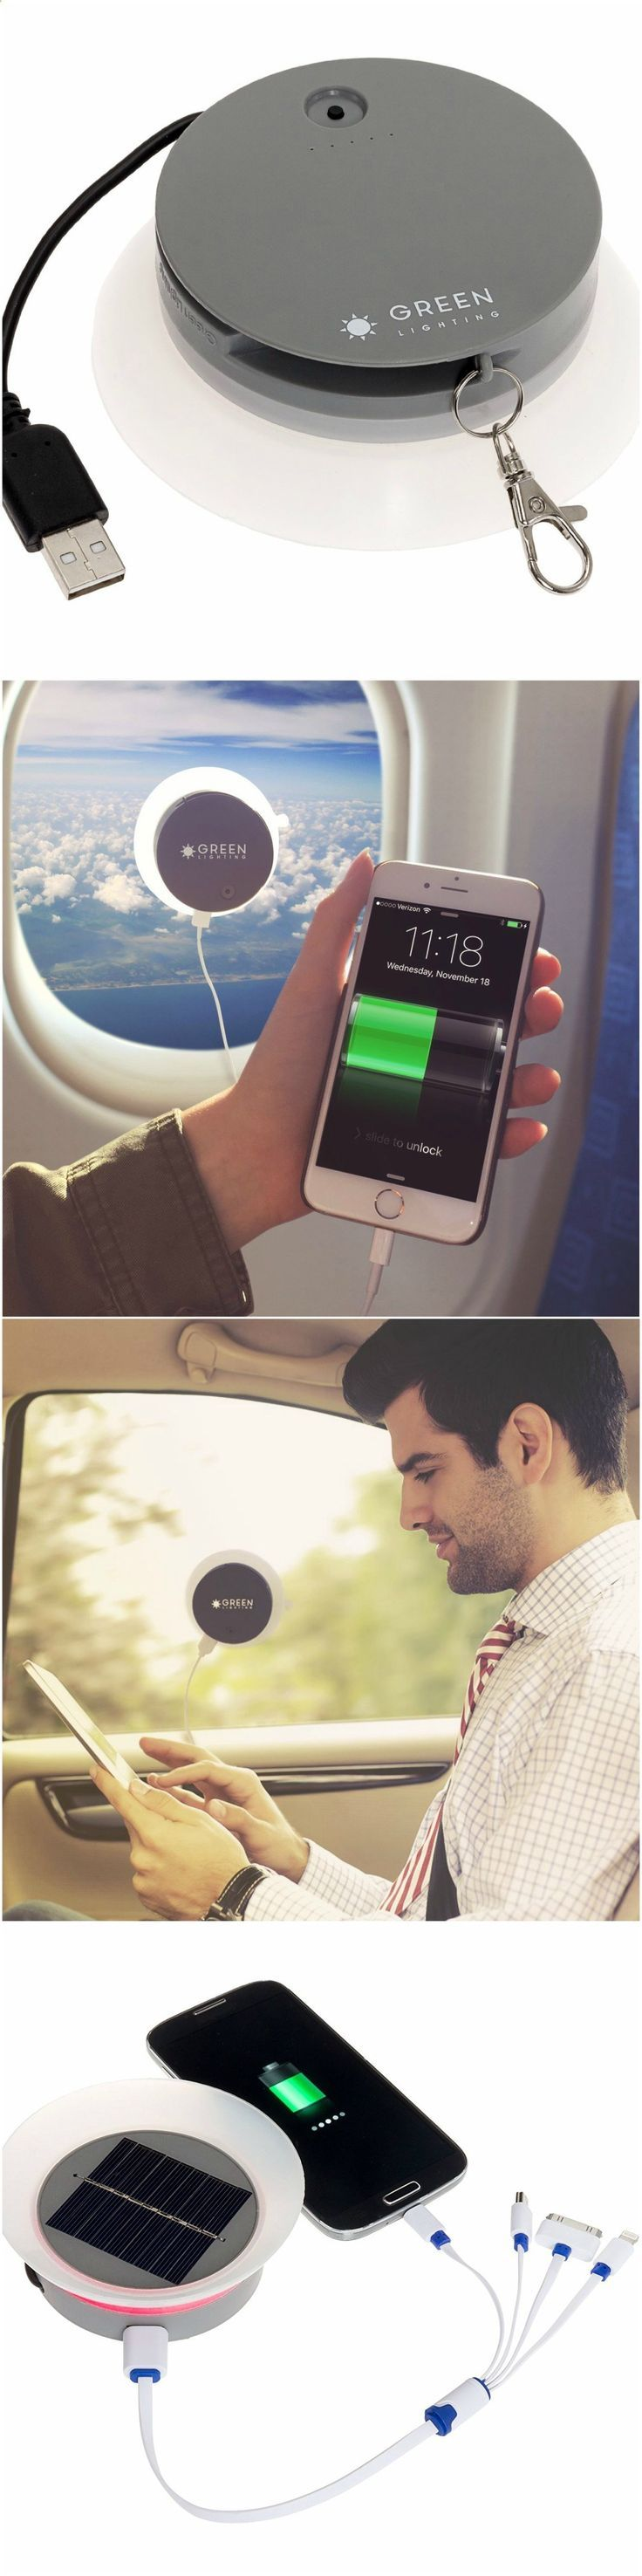 GreenLighting Solar Phone Charger - 2000mAh Window Cling Power Bank #cool #technology #gadgets